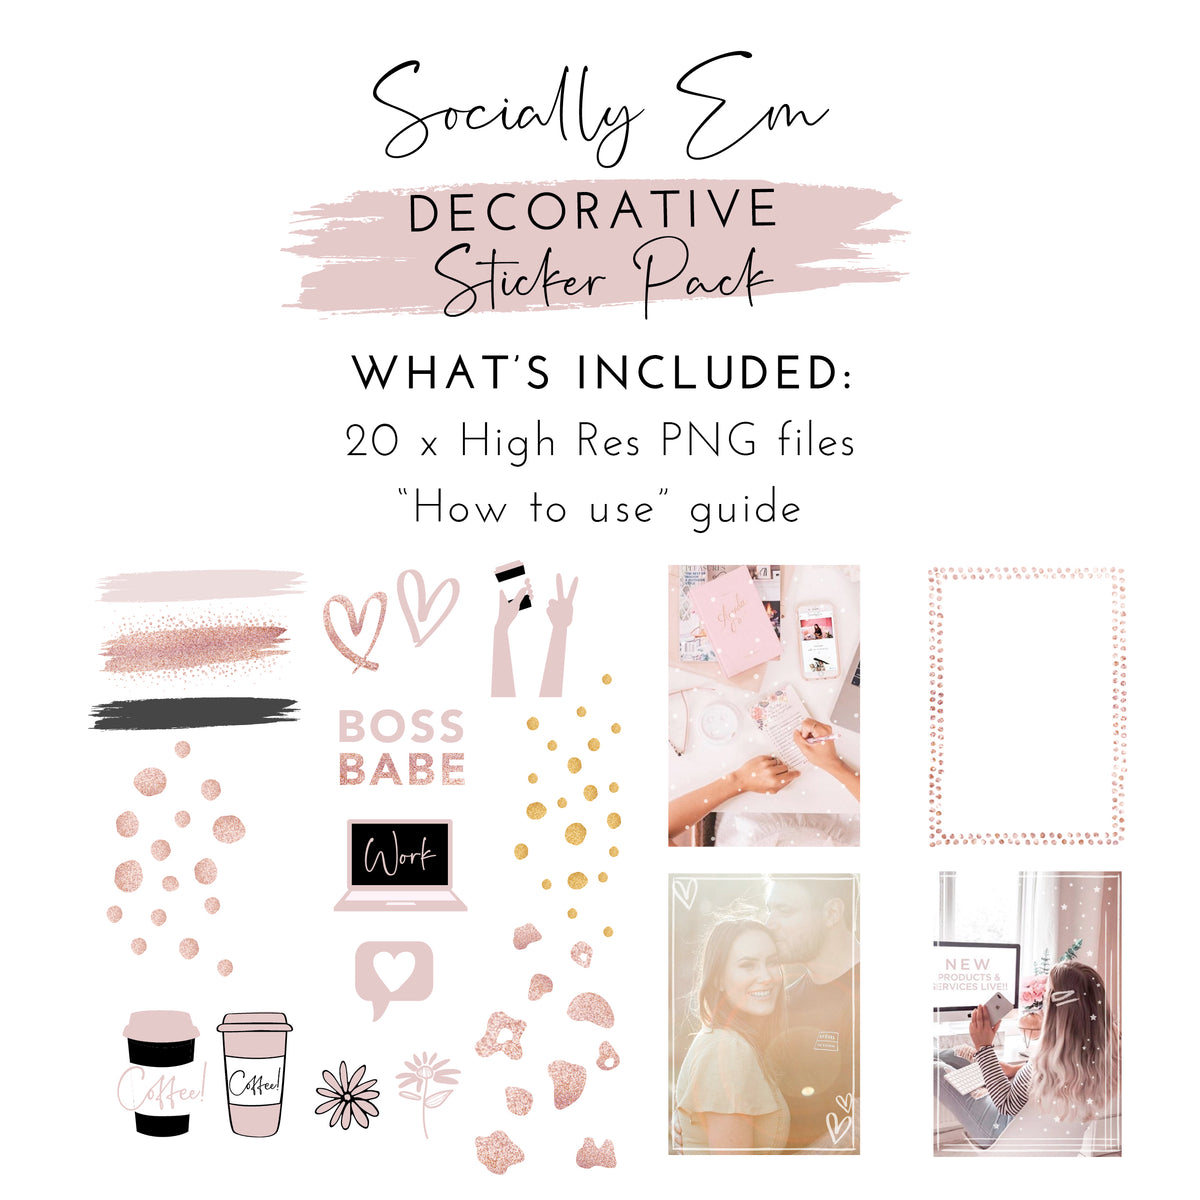 Decorative Instagram Story Sticker Pack